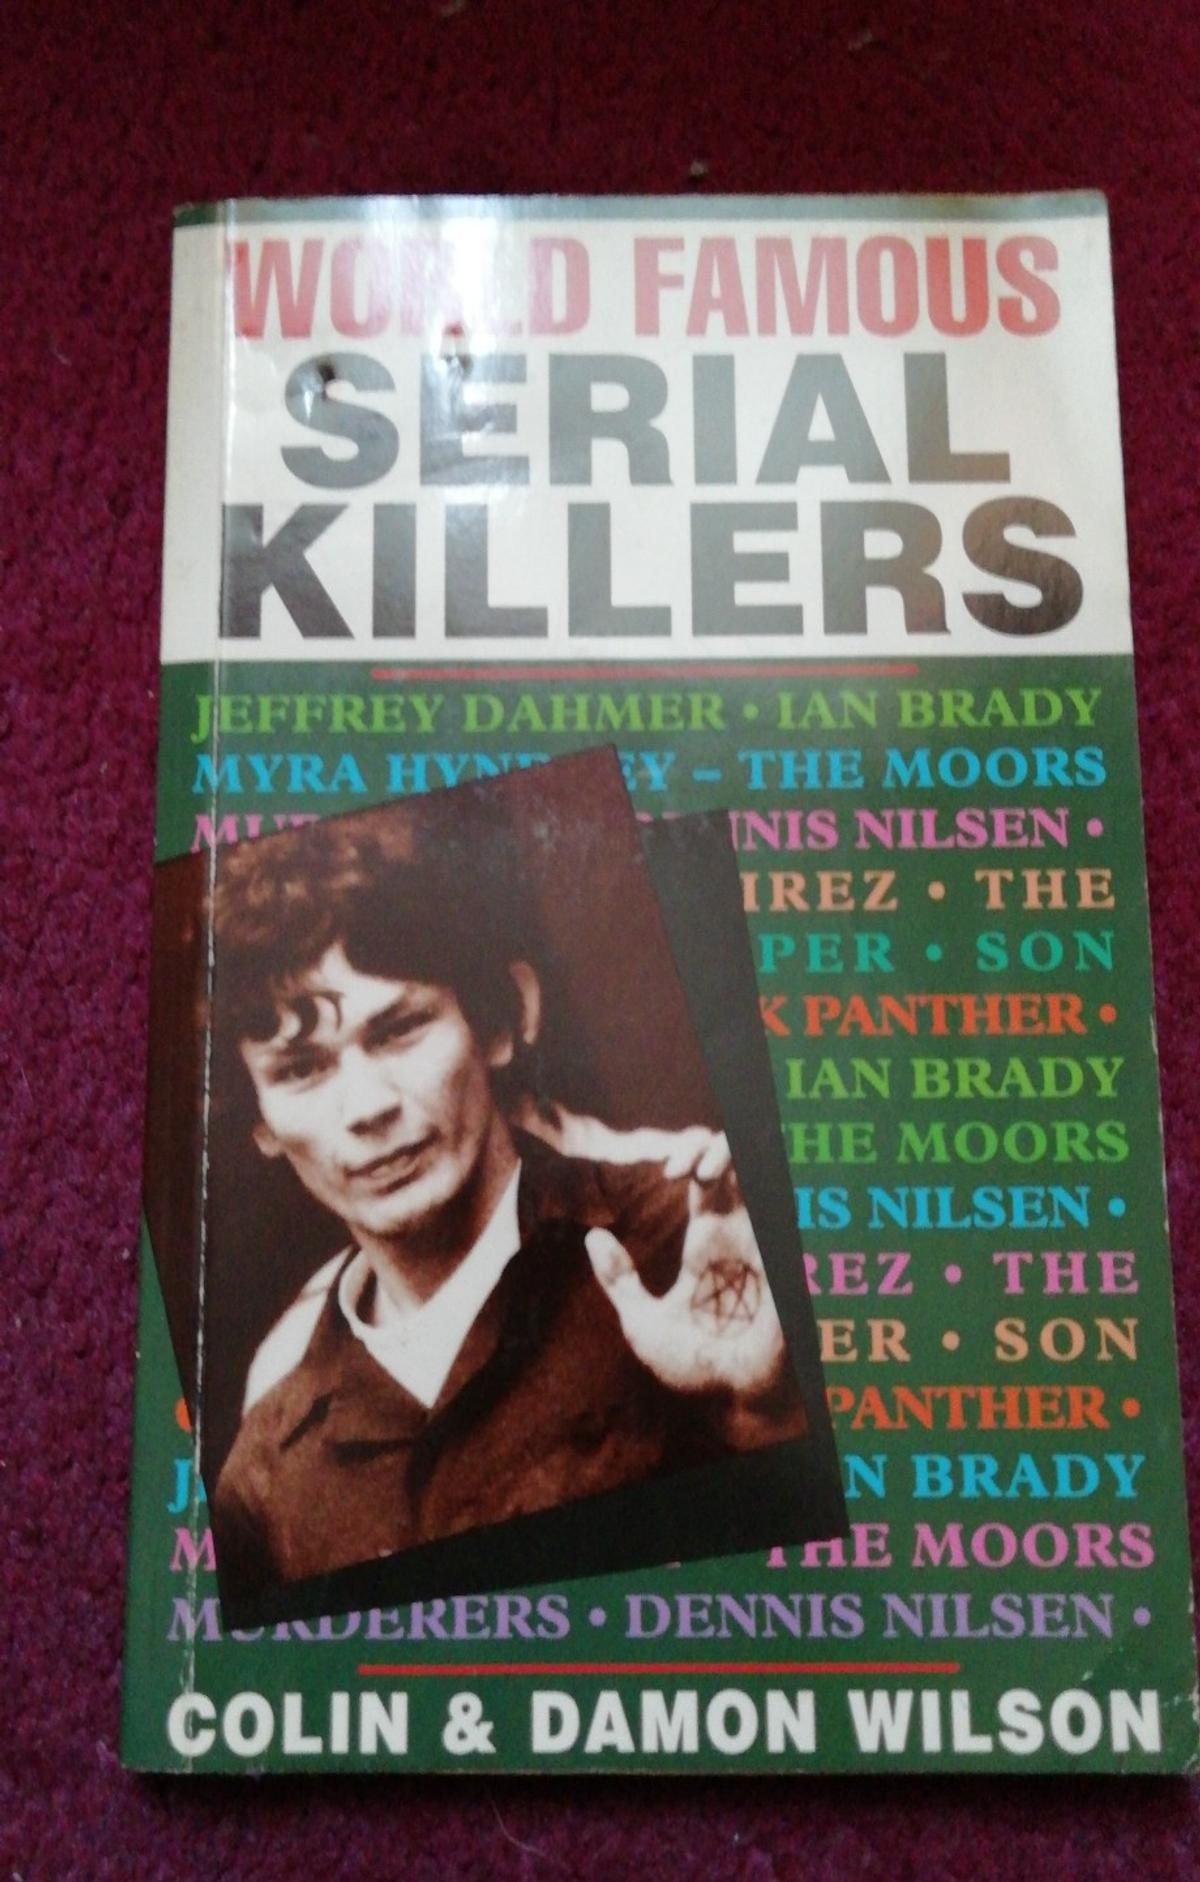 World famous serial killers